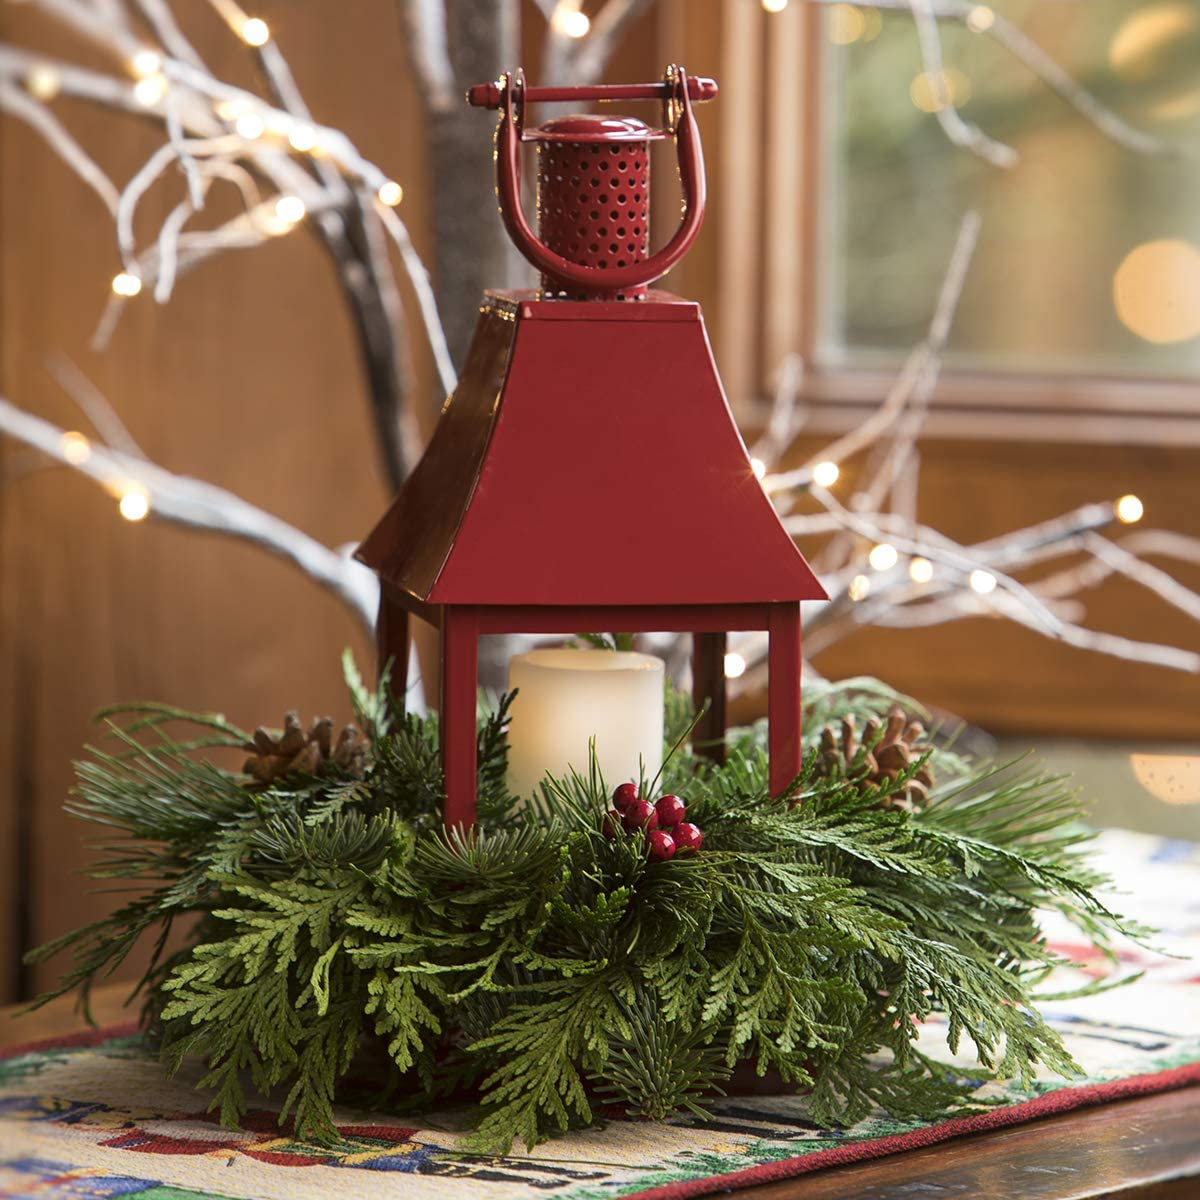 Green VAN ZYVERDEN 87410 Live Fresh Cut Pacific Northwest Lantern with LED Candle Centerpiece Holiday 14.5